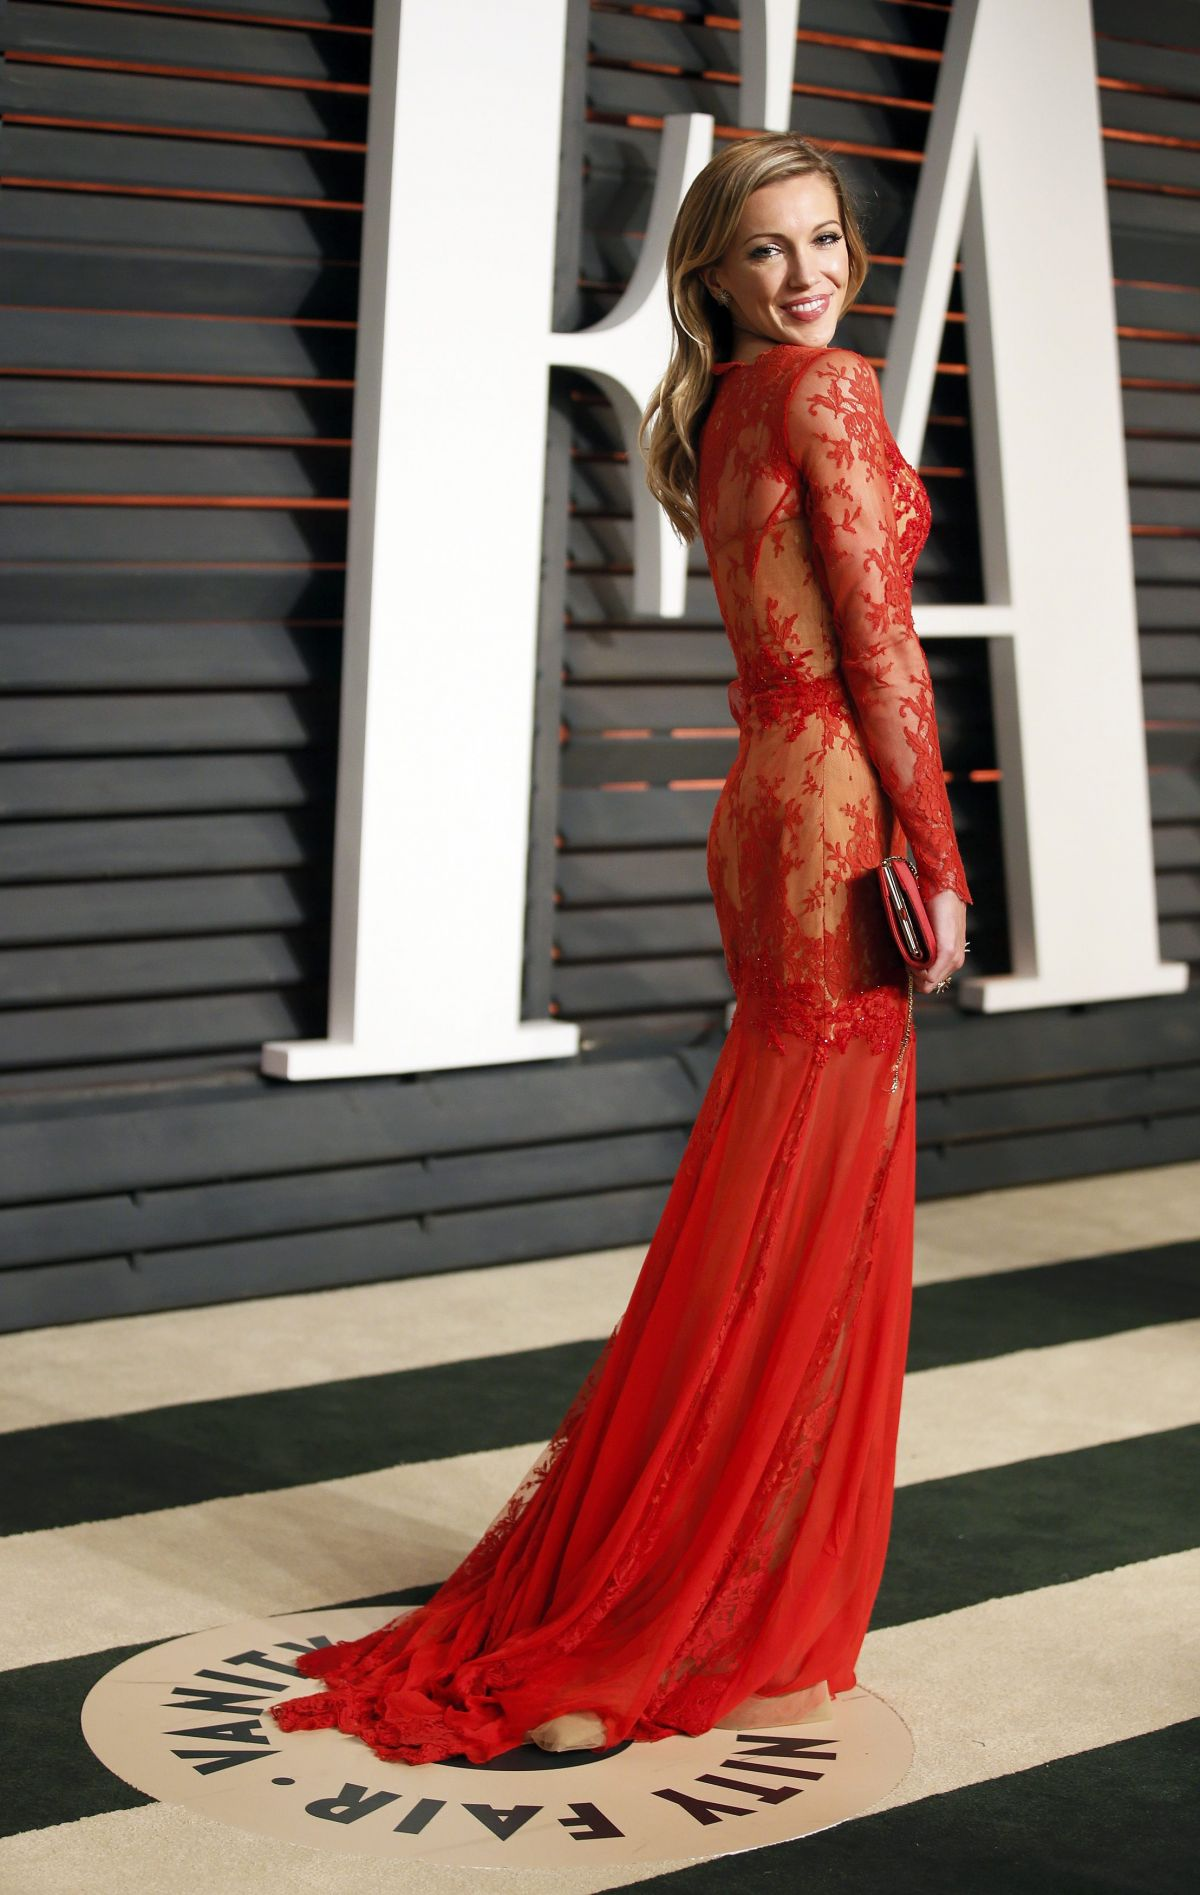 KATIE CASSIDY at Vanity Fair Oscar Party in Hollywood